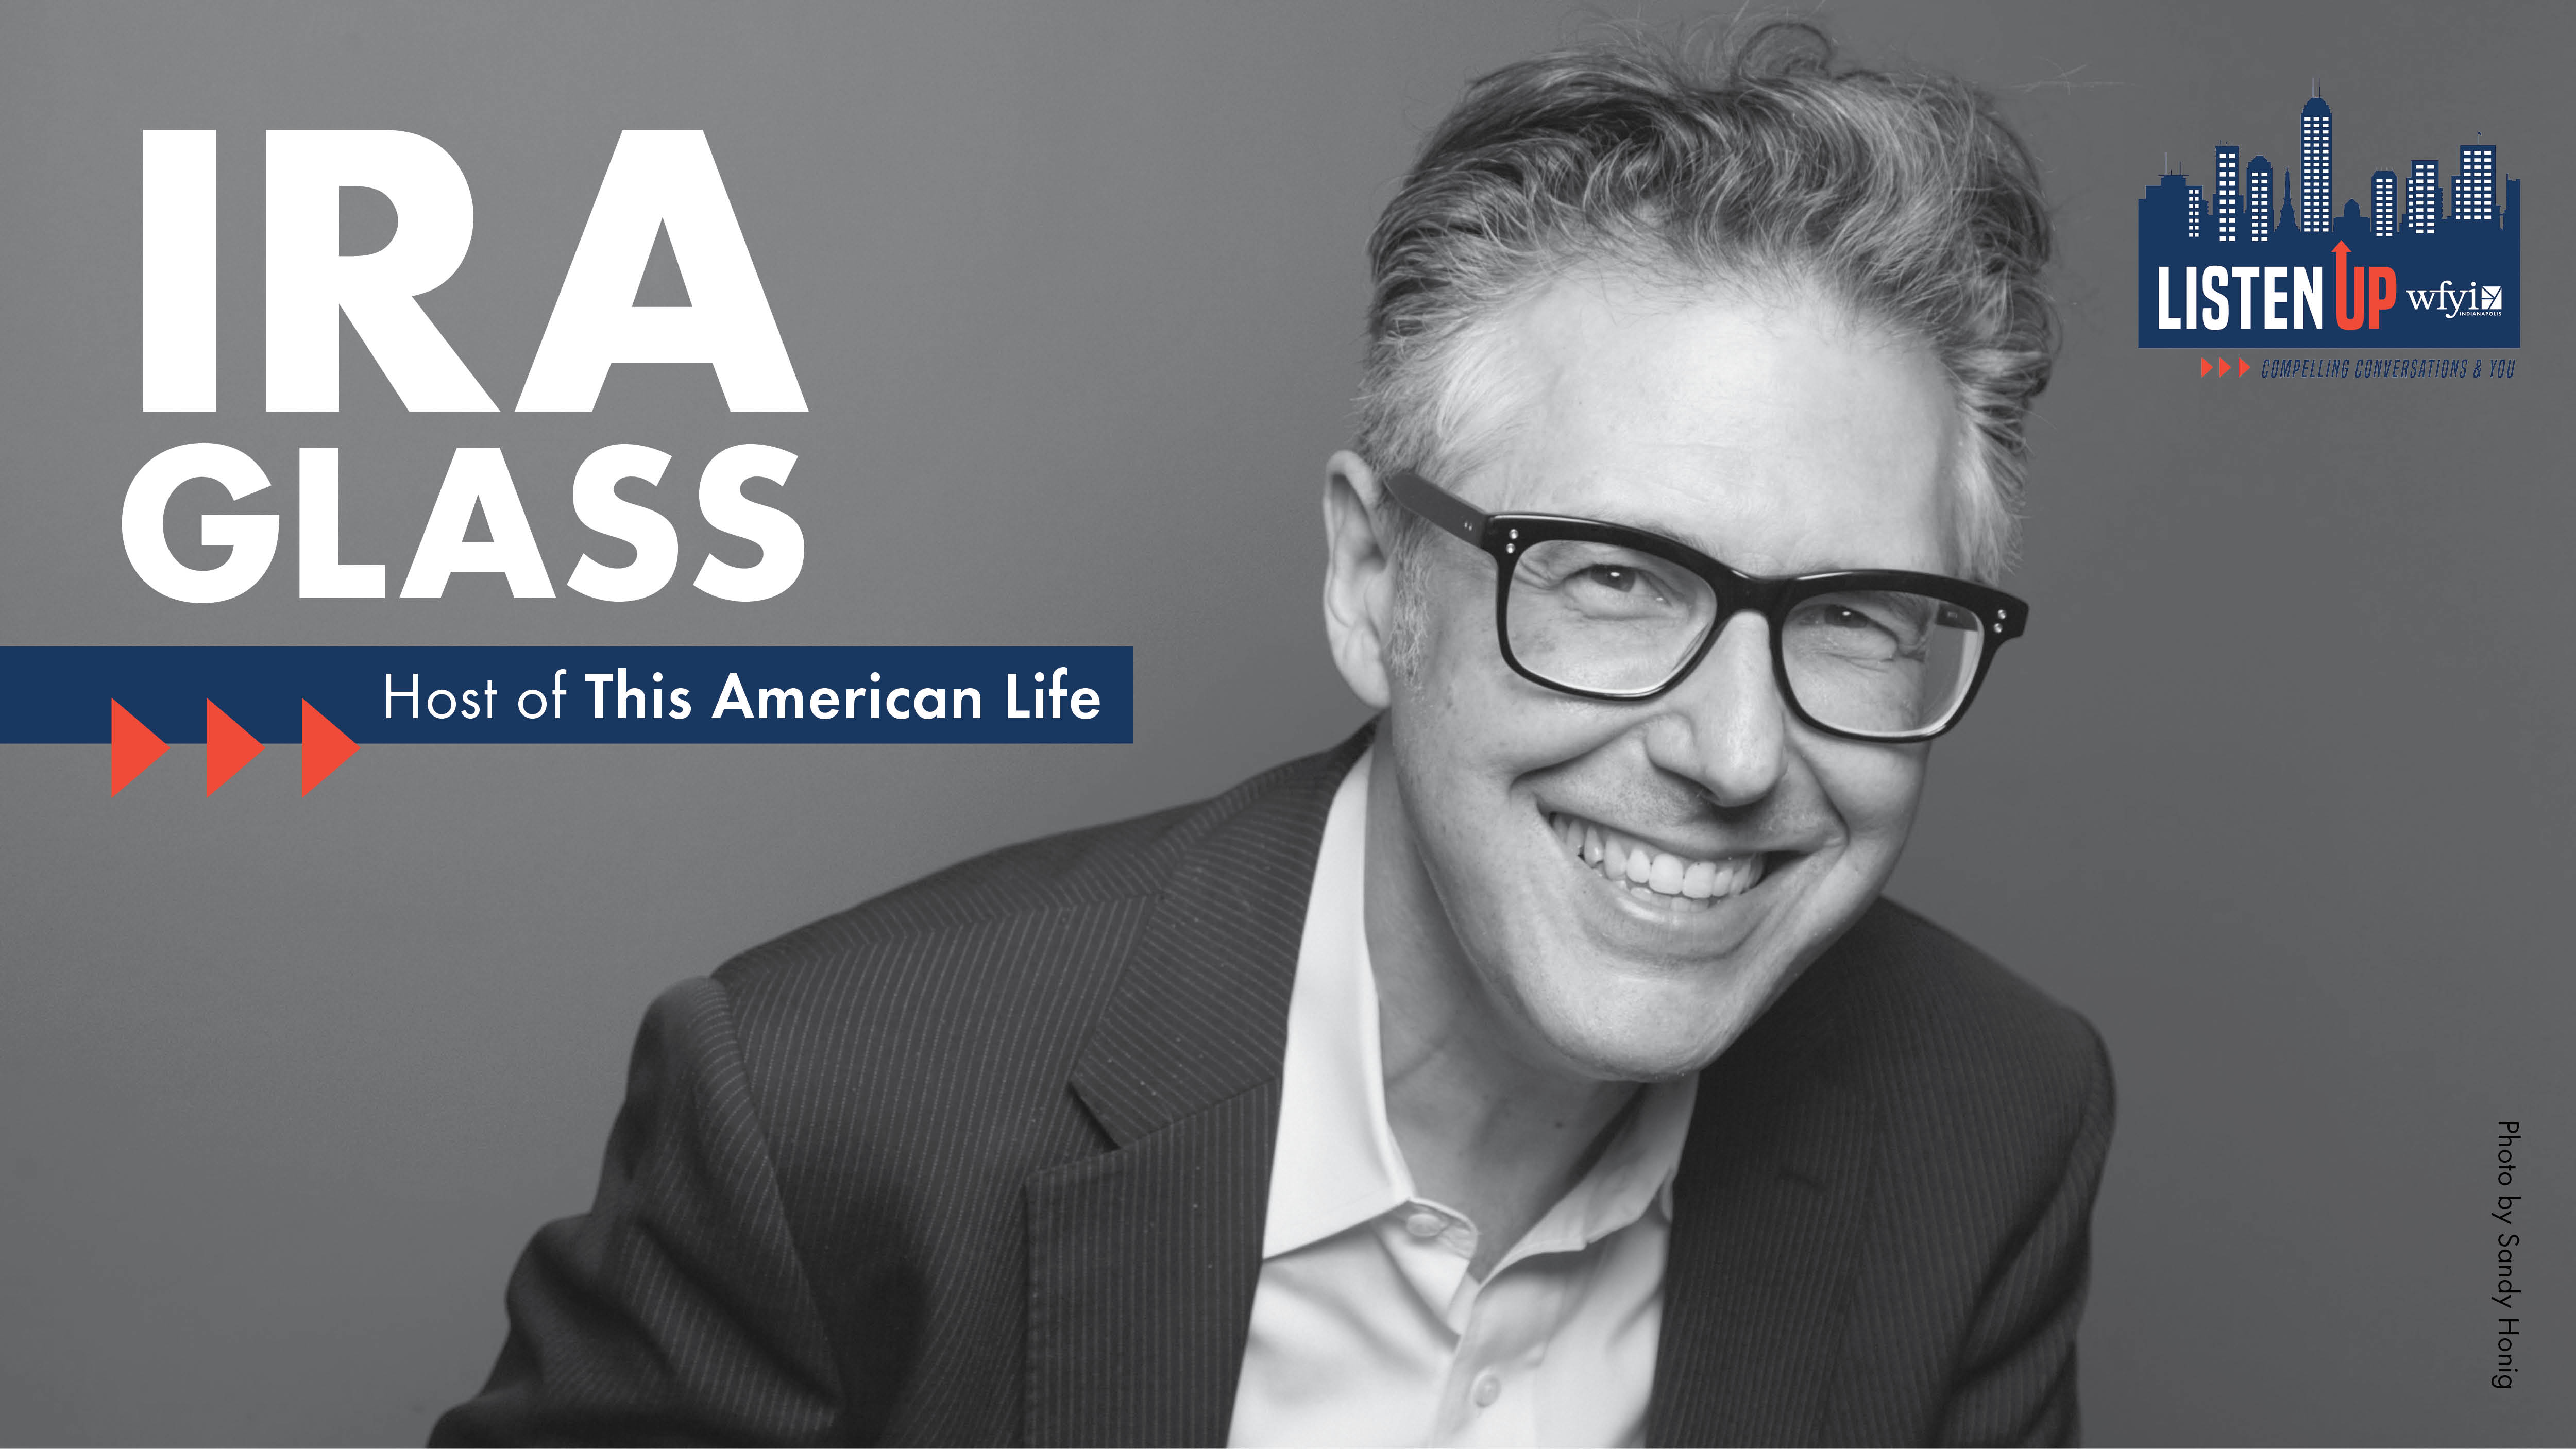 WFYI's Listen Up with Ira Glass